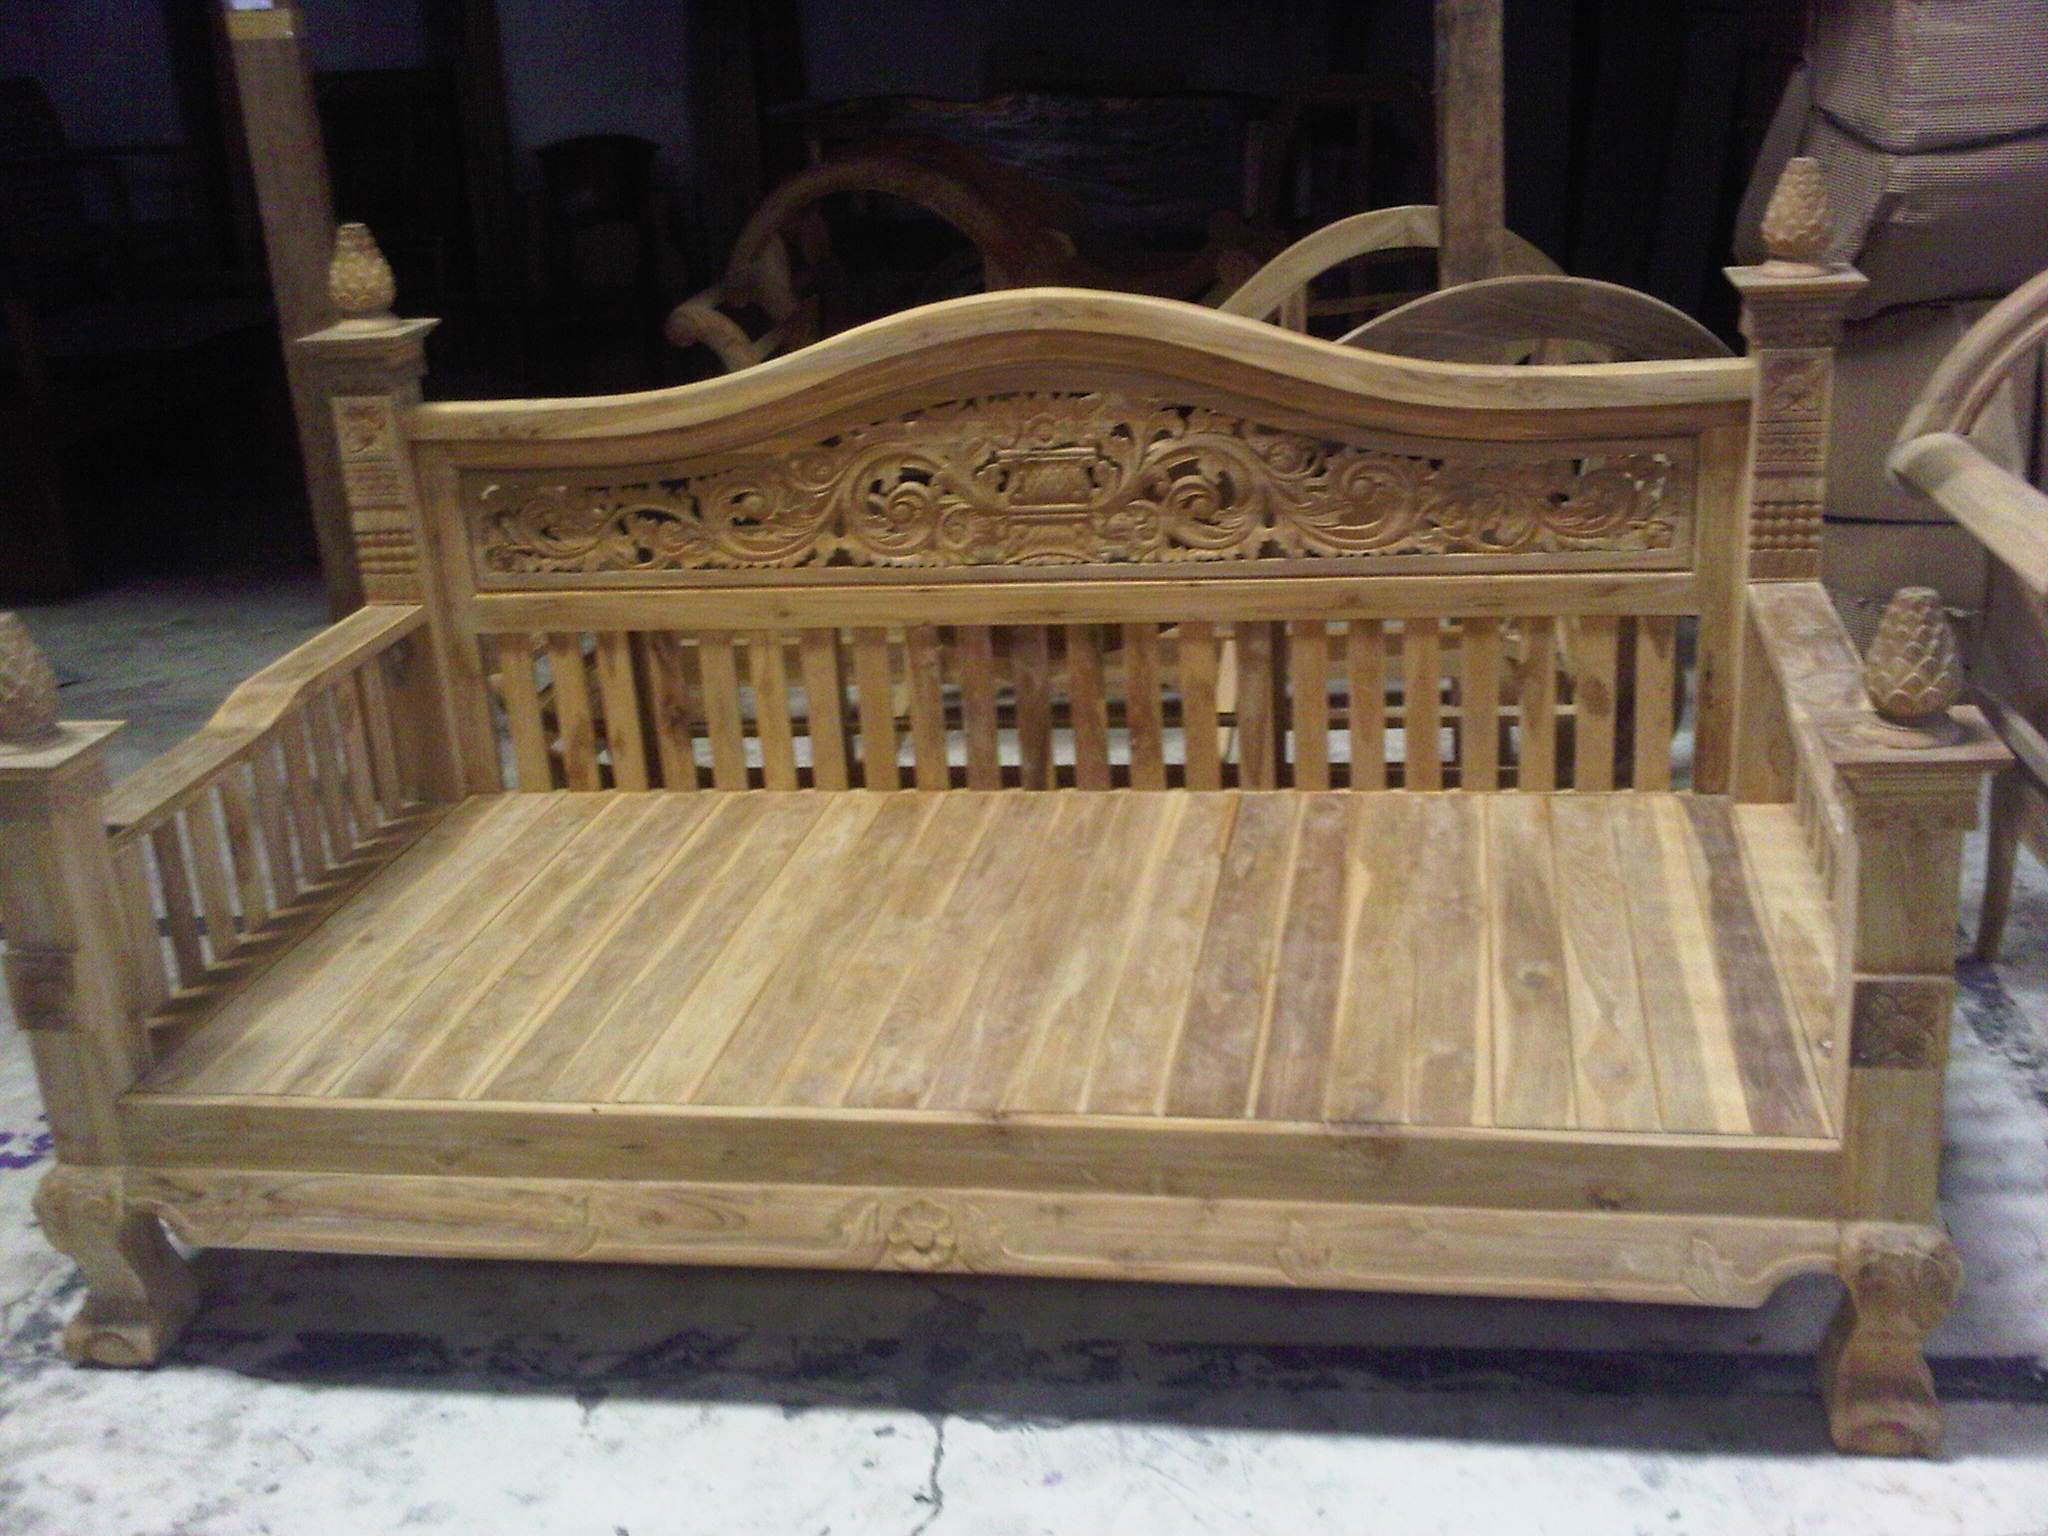 ฺำฺBench 100A teak wood with carving size 200x80cm